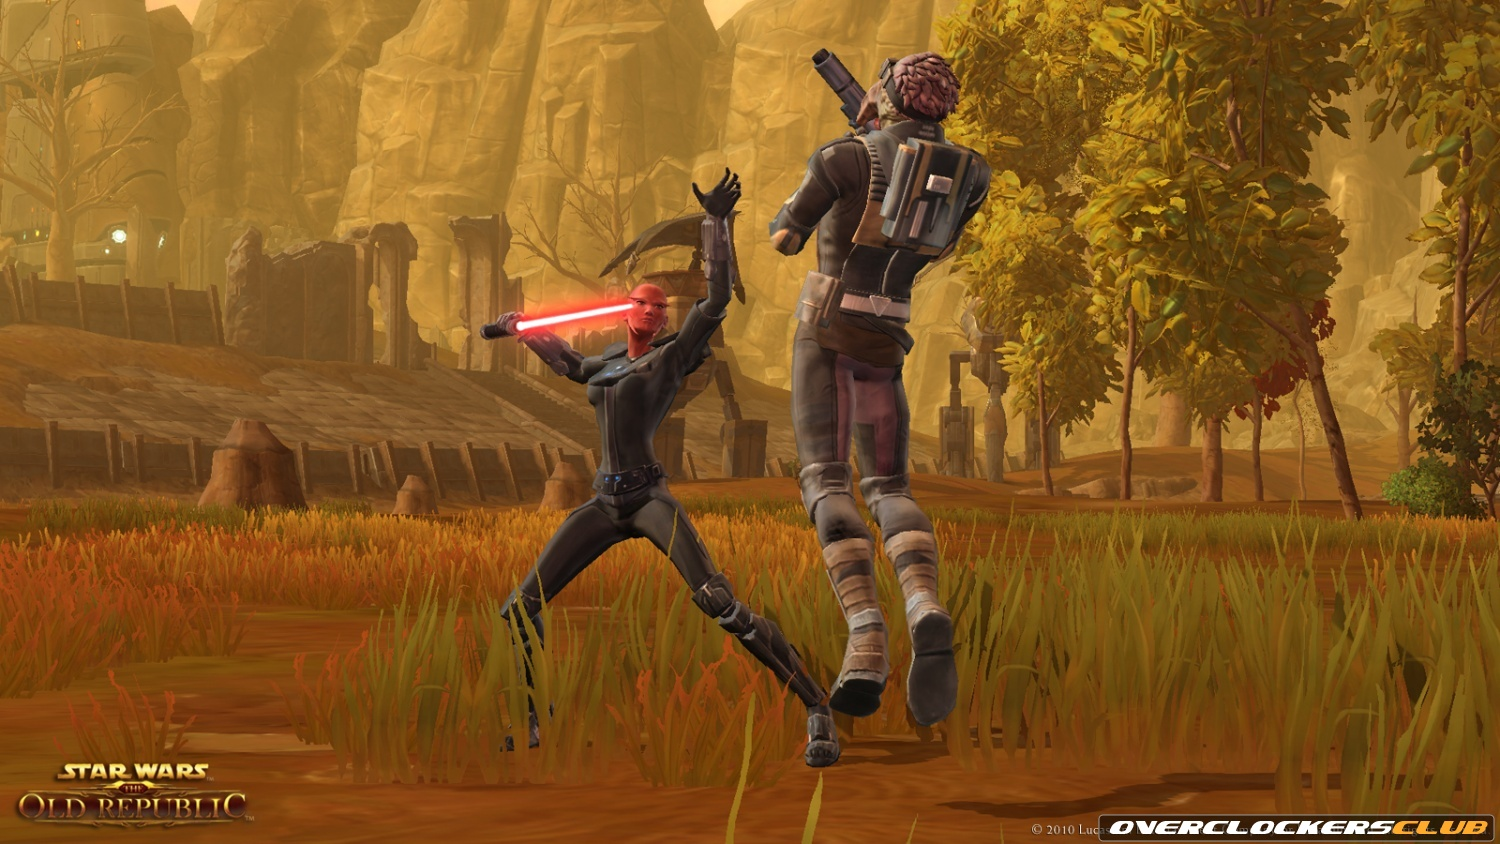 Four New Playable Species Announced for The Old Republic